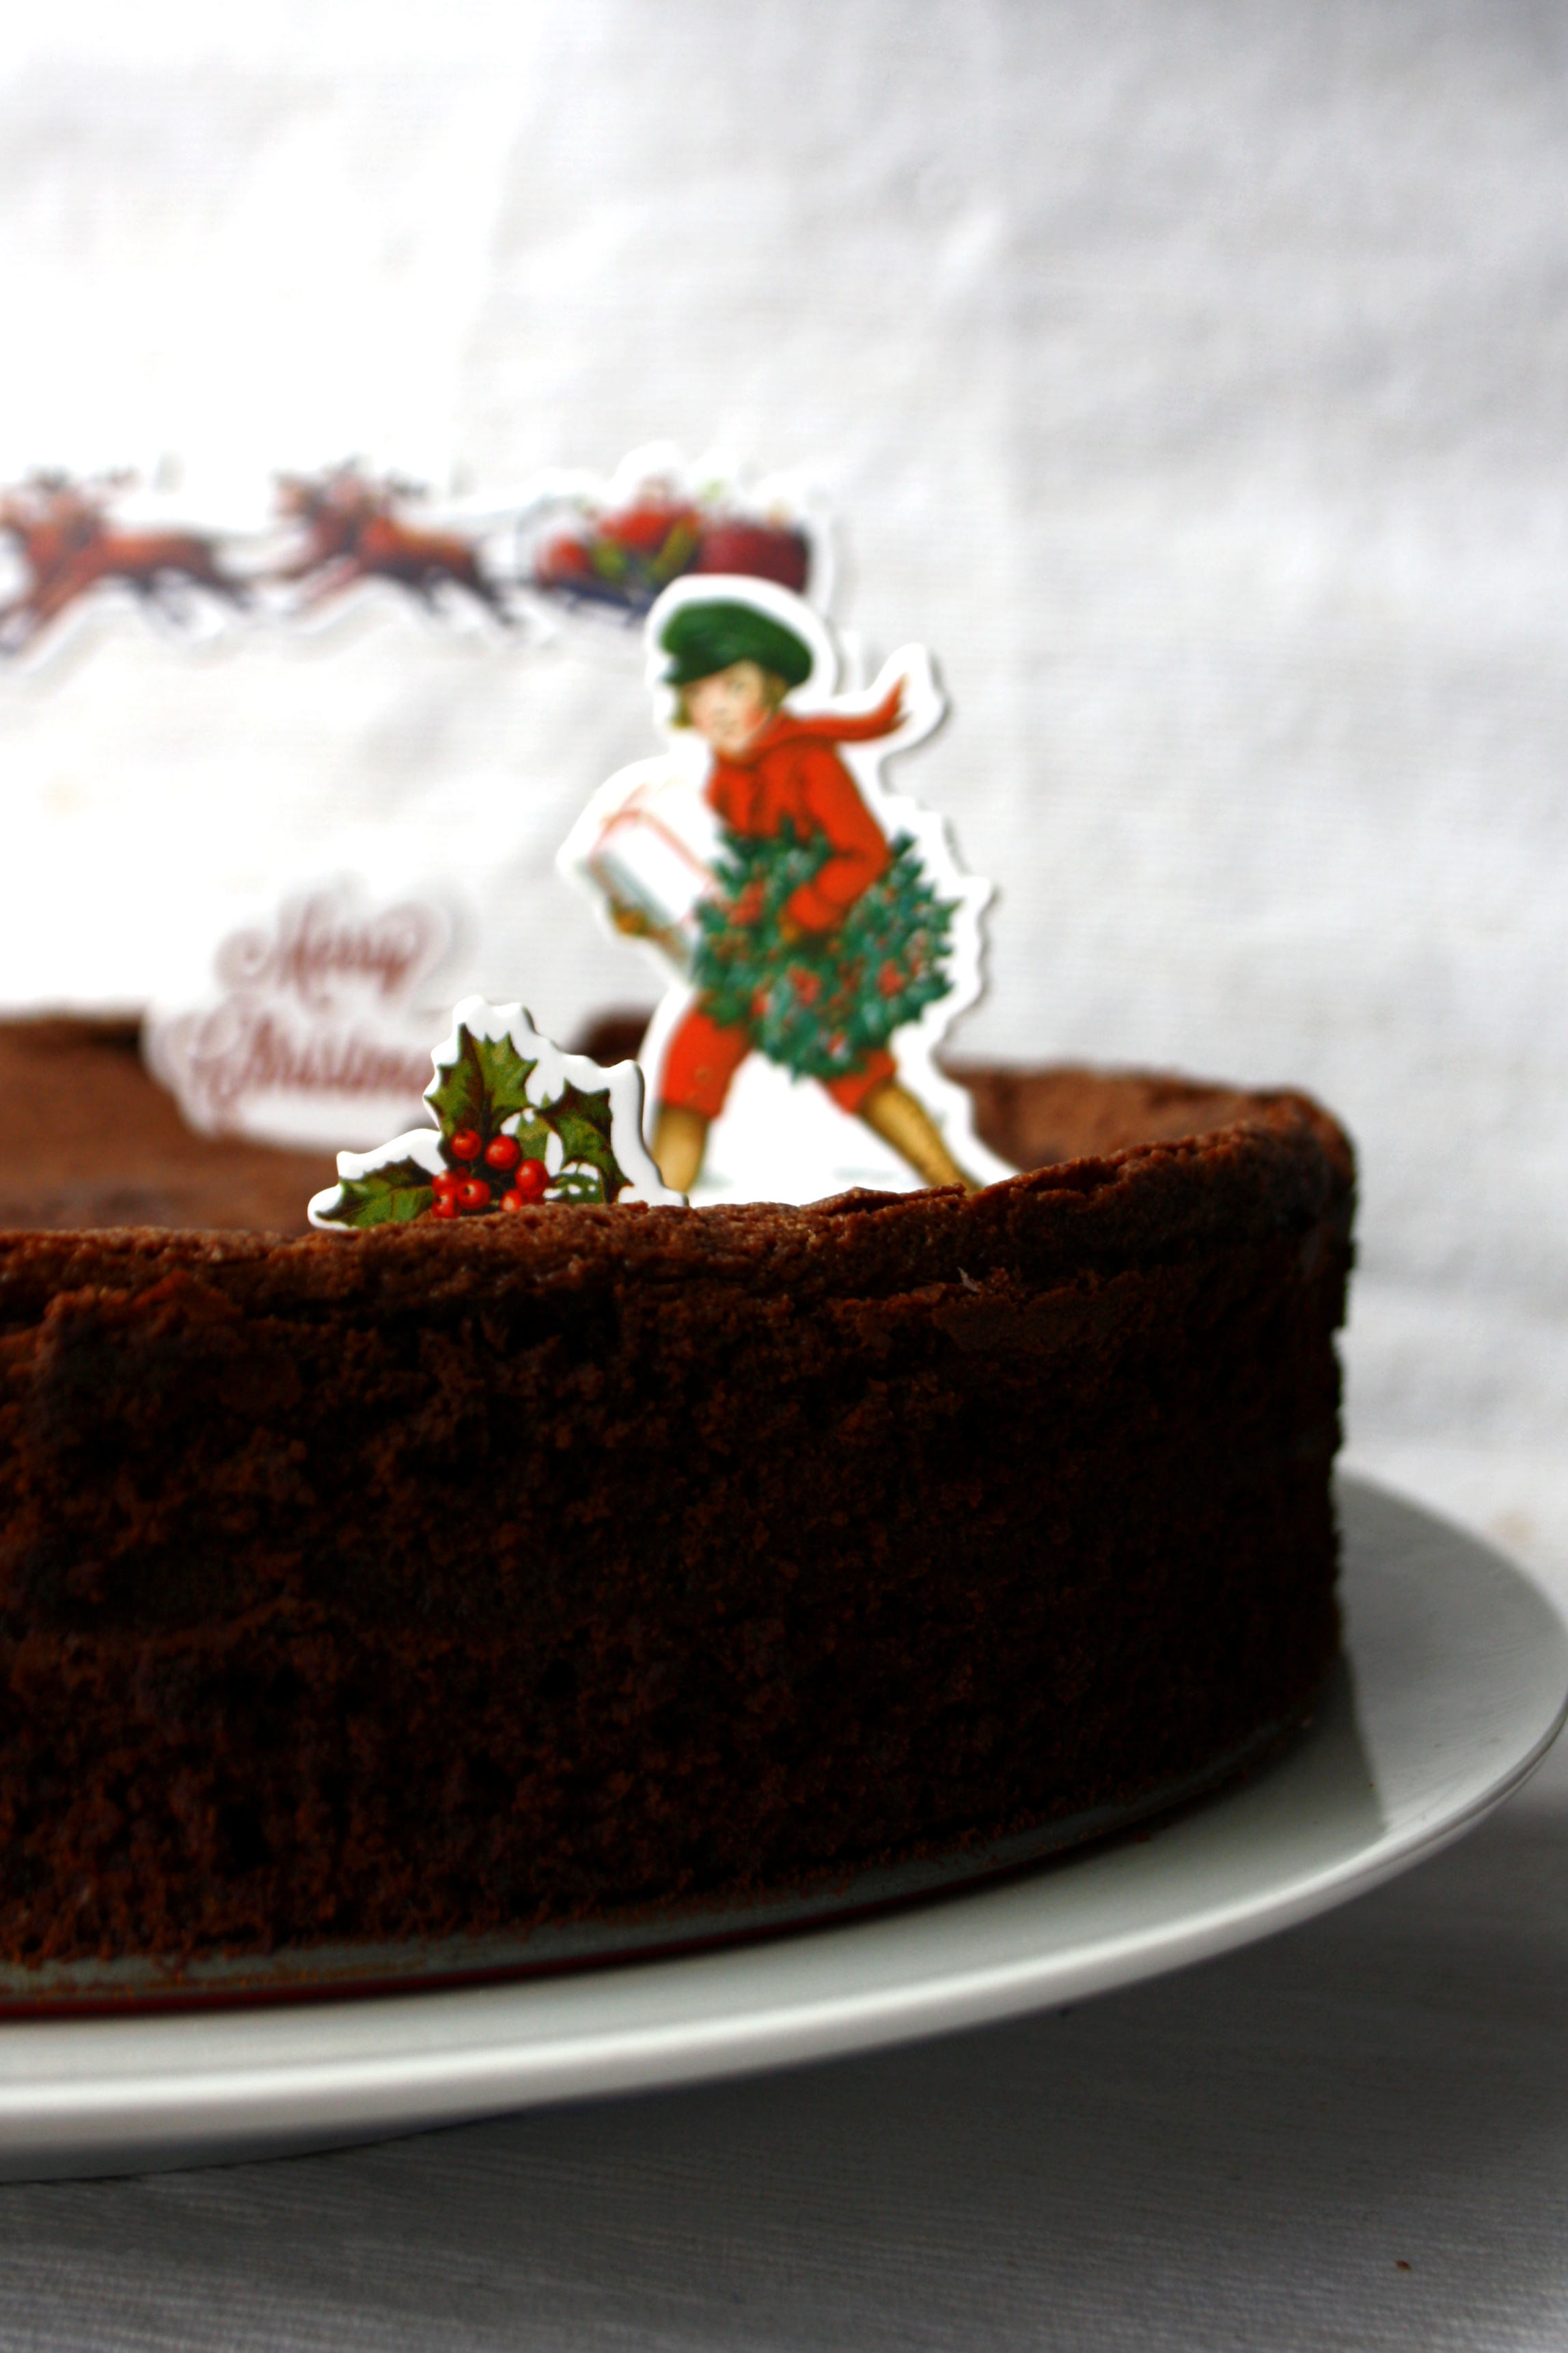 Mississippi-Mud-Pie by http://babyrockmyday.com/mississippi-mud-pie-doppelt-gebacken/